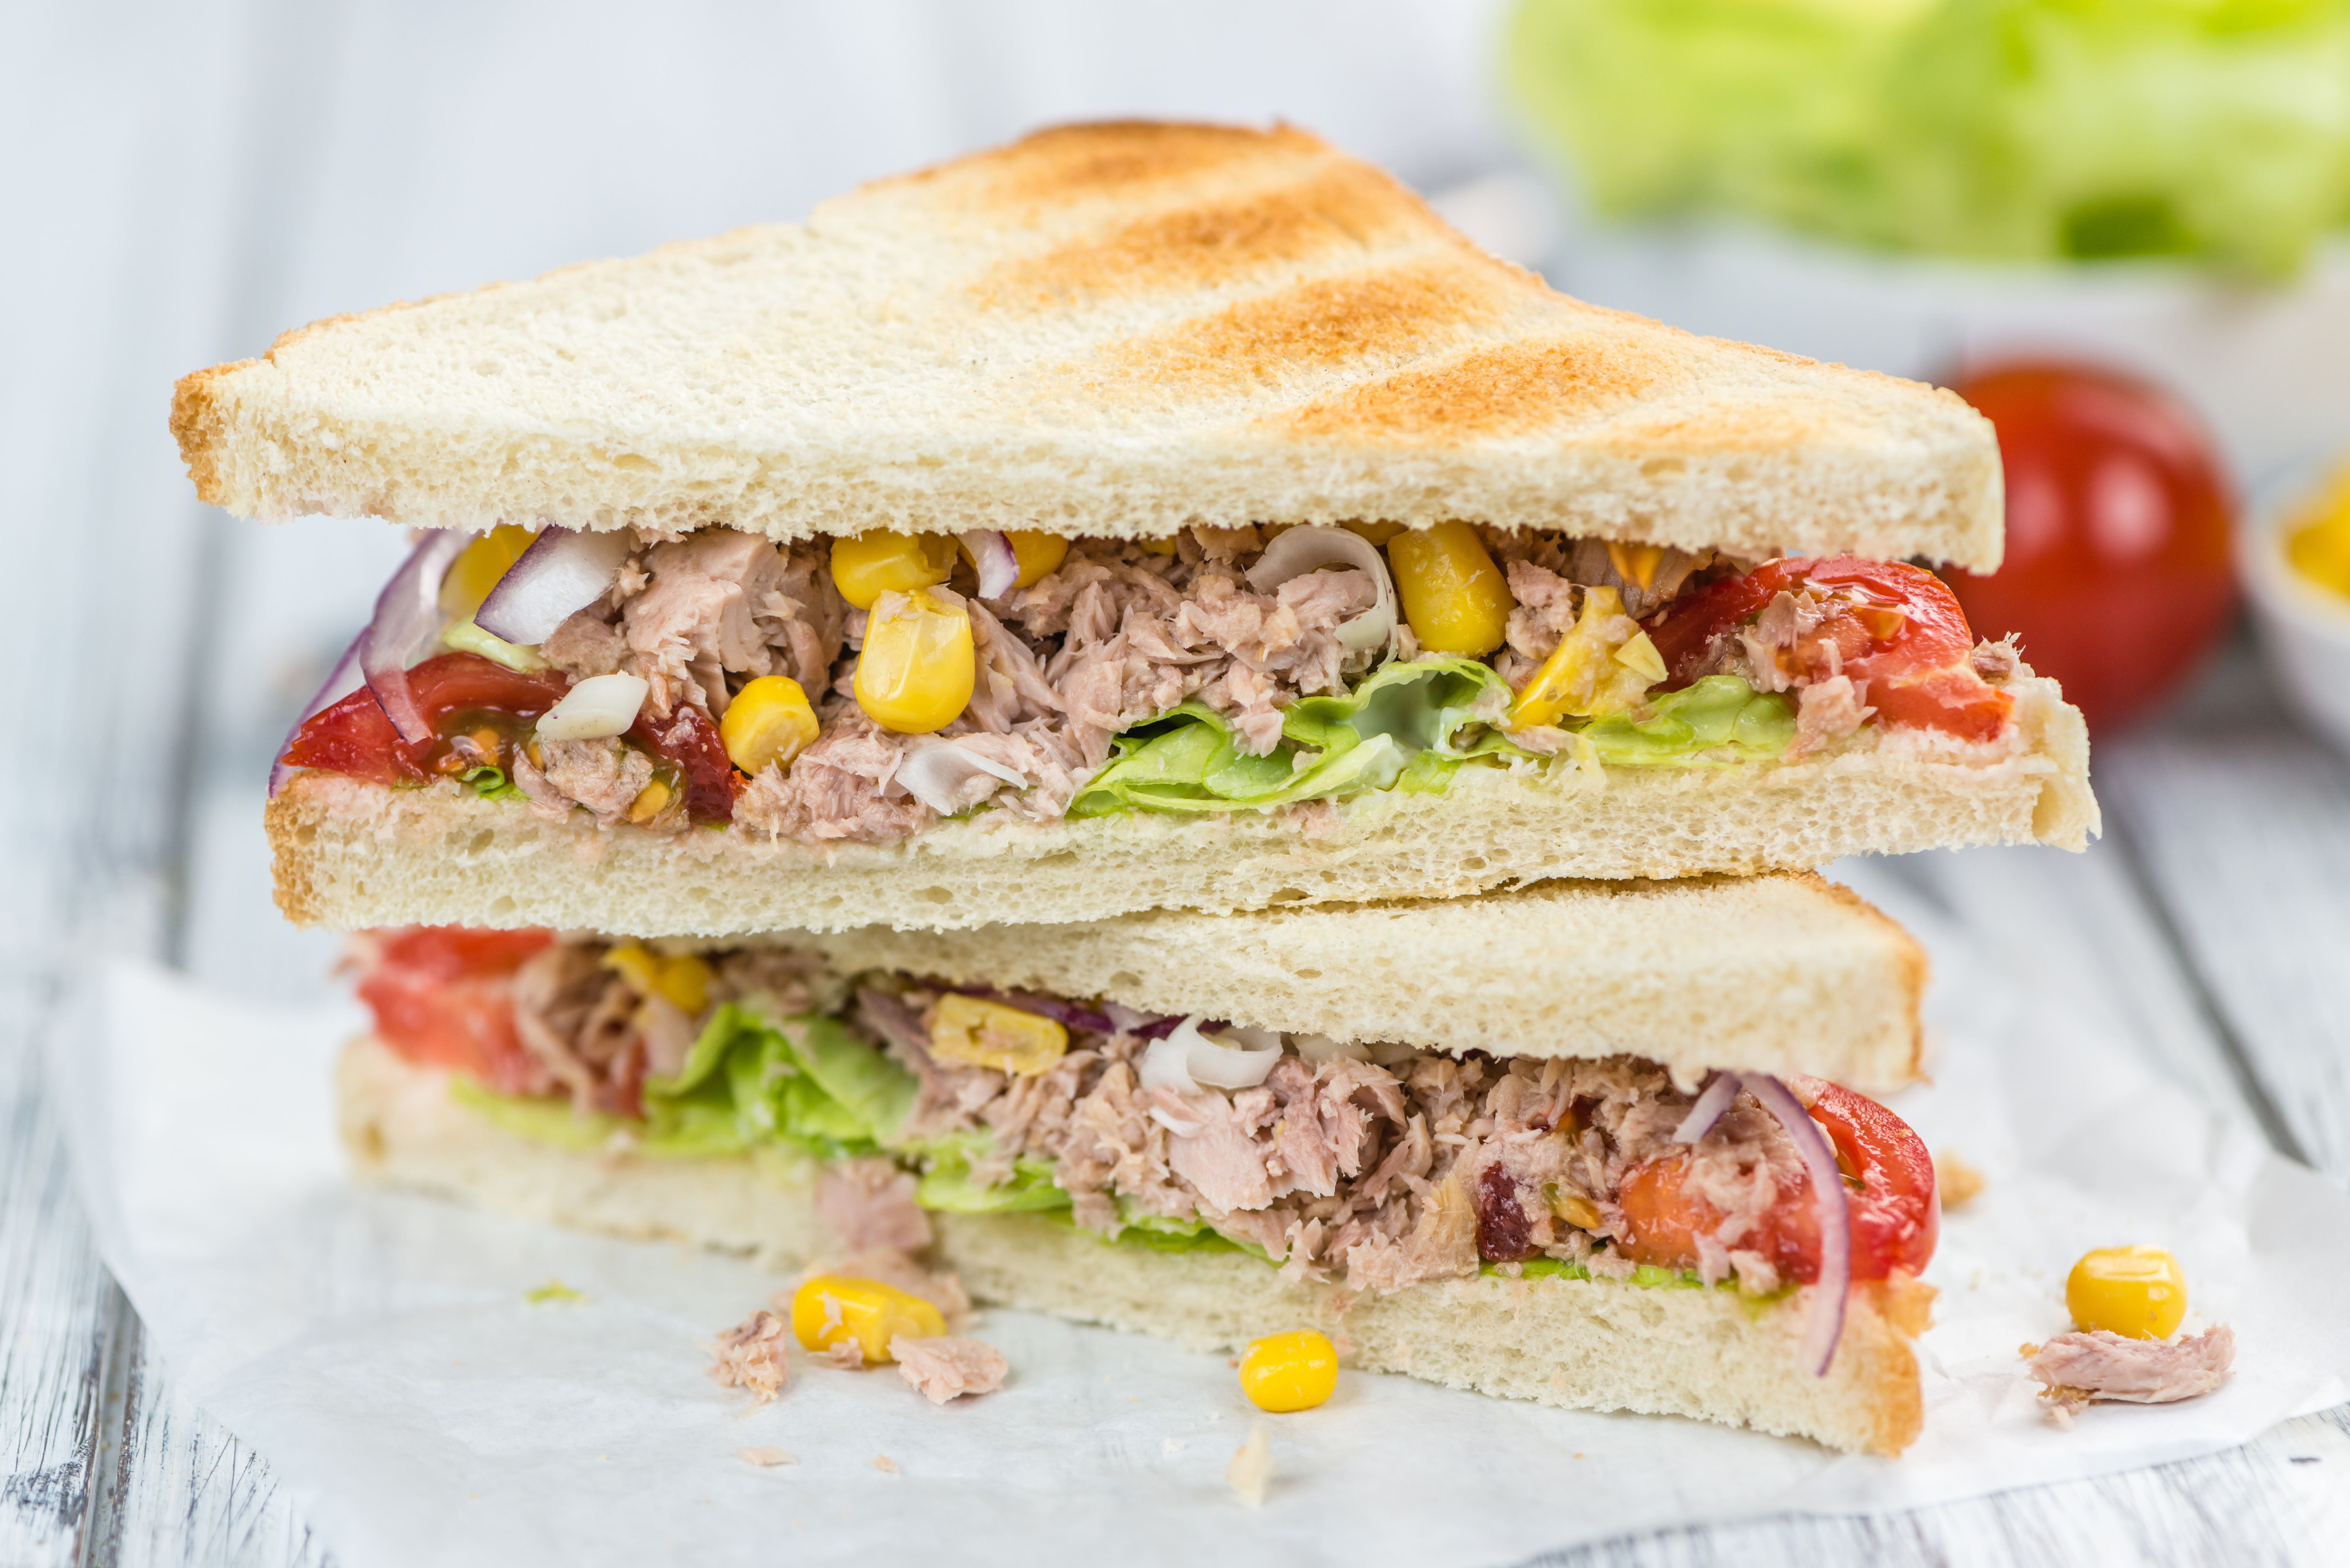 The Healthiest Way To Make A Tuna Sandwich Healthy Eating